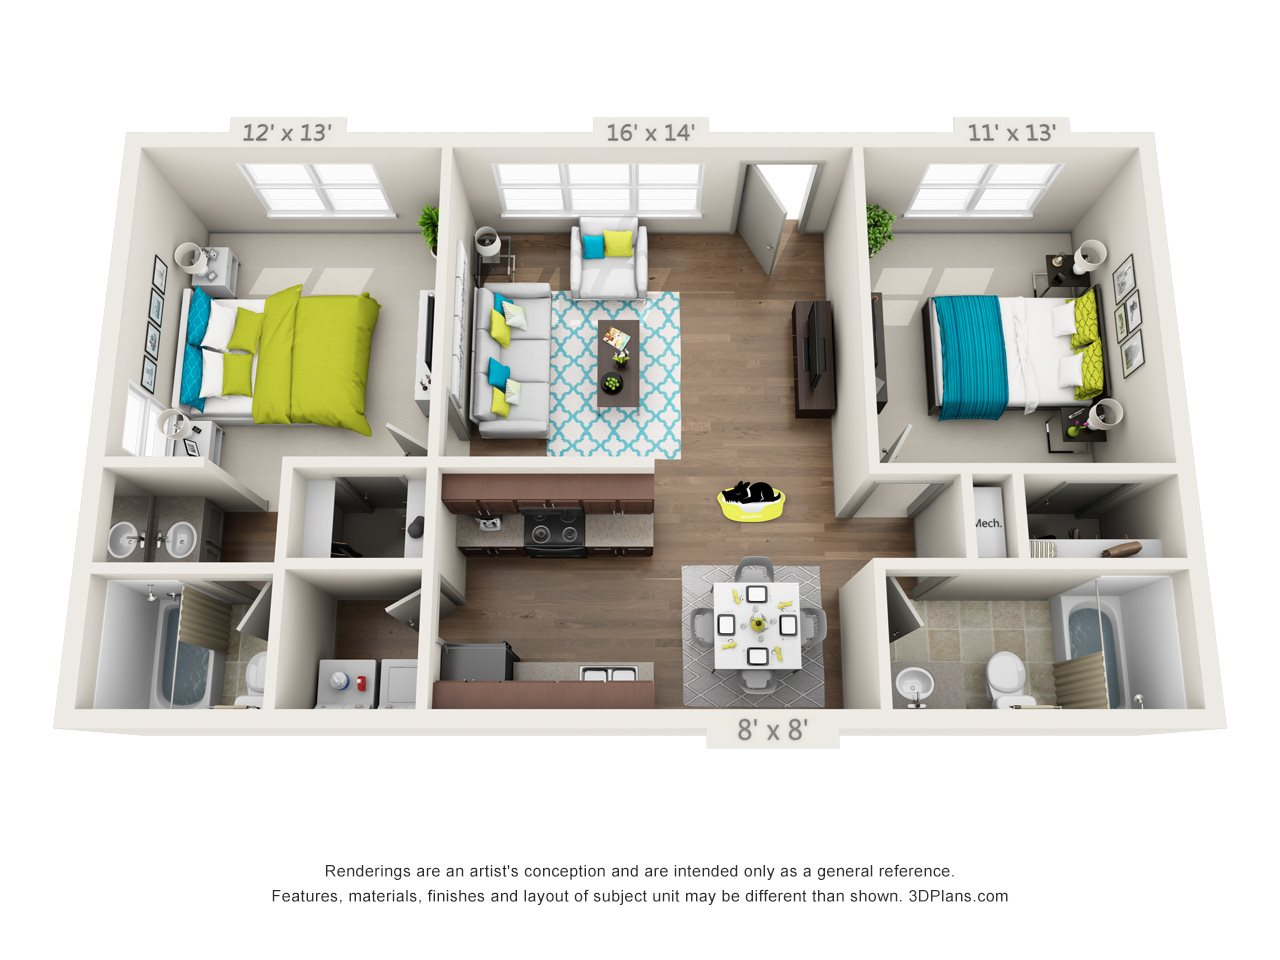 2x2 - Refreshed Floor Plan 4